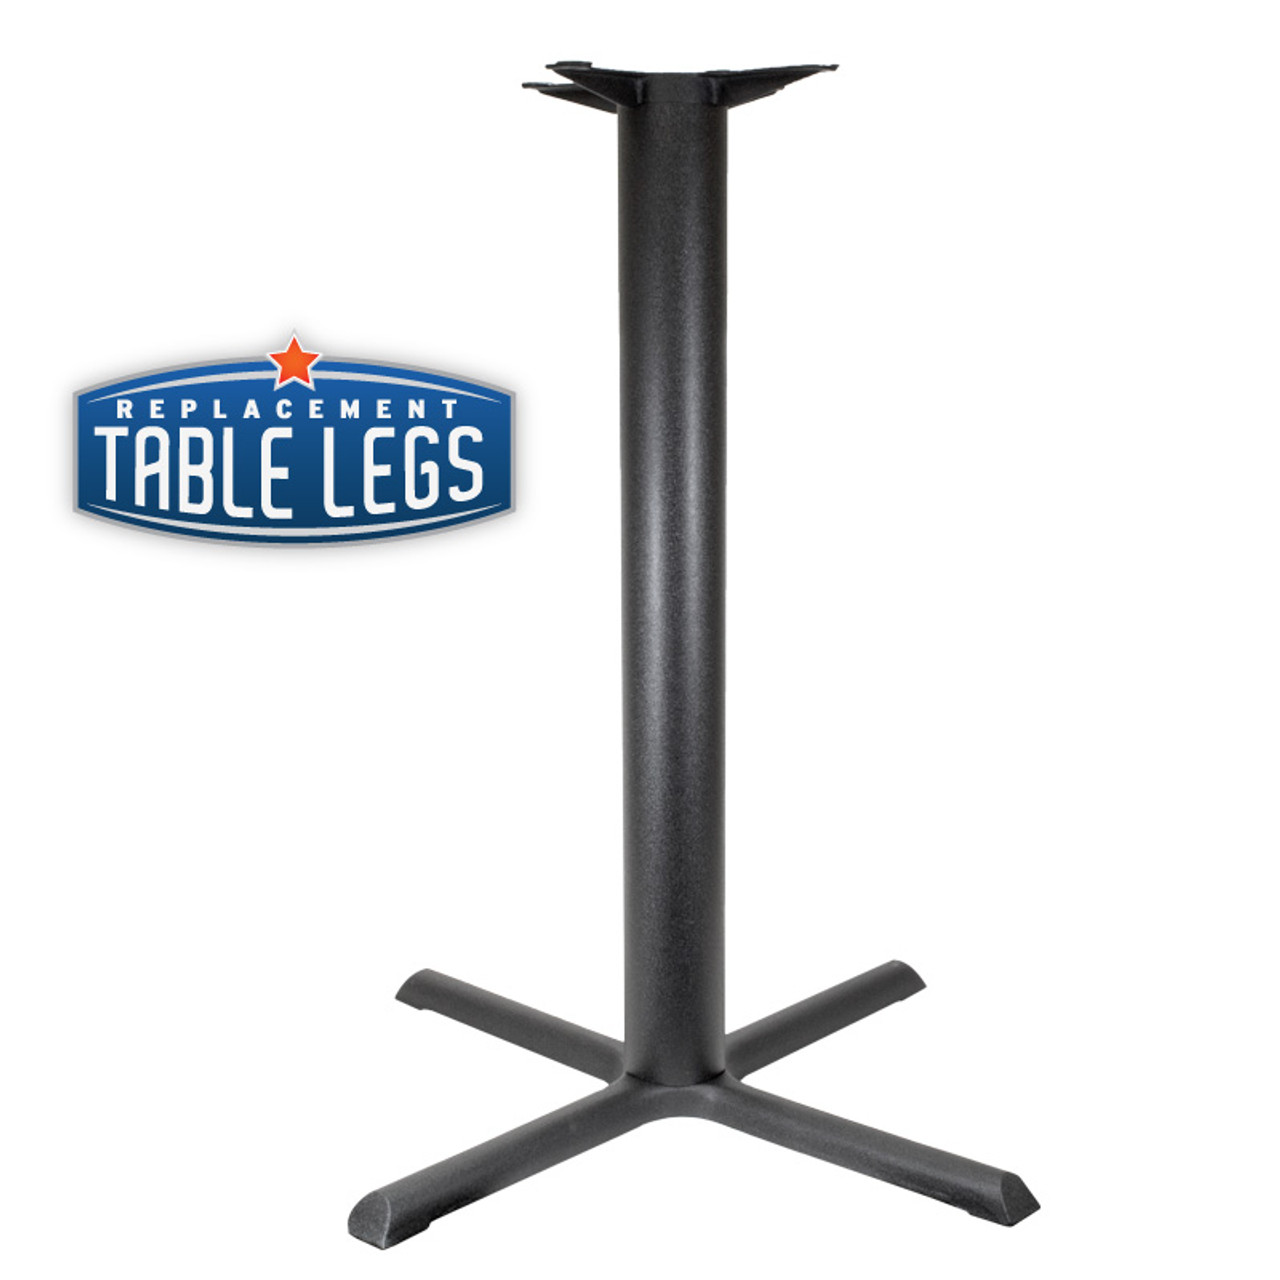 "CAST IRON TABLE BASE, X Style 36""x36"", 40-1/4"" height, 4"" diameter steel column - replacementtablelegs.com"